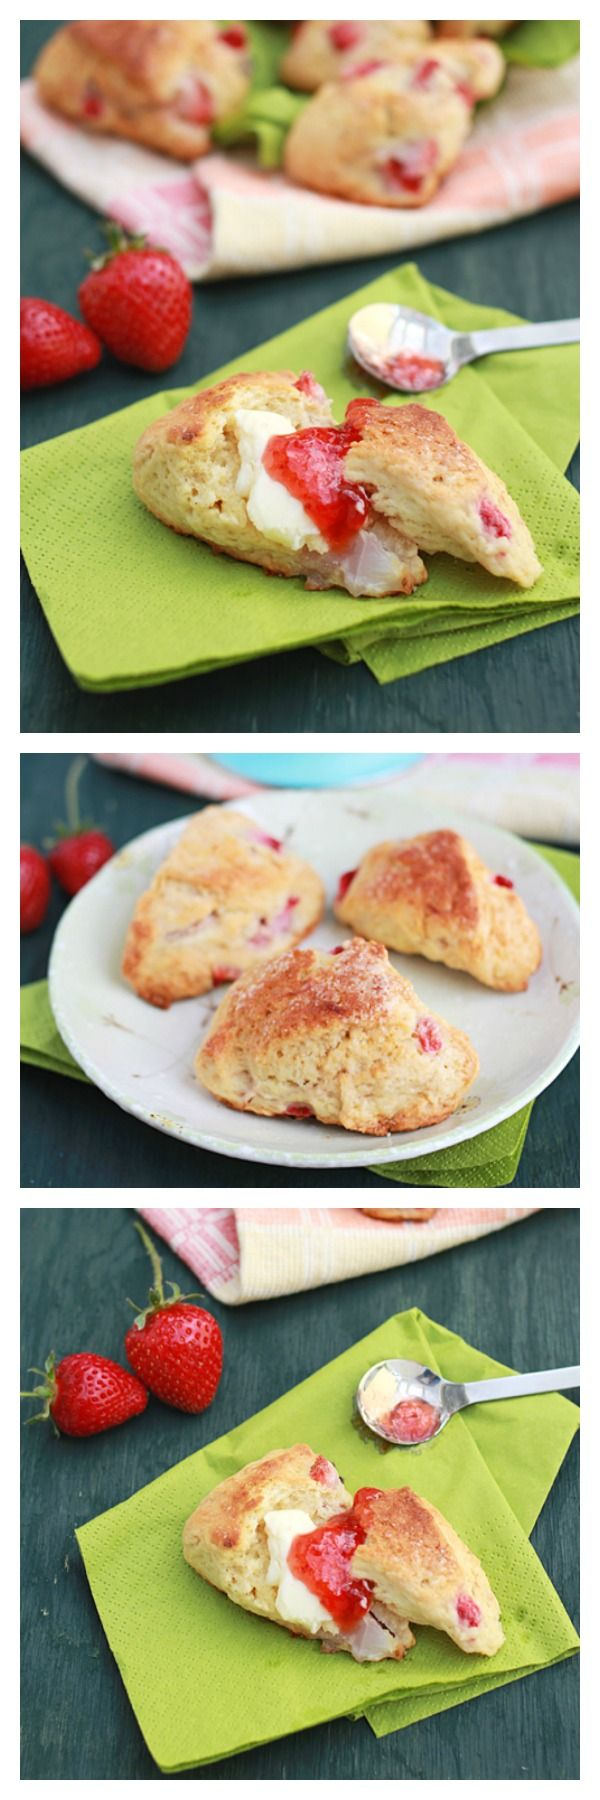 Strawberry scones and strawberry scones recipe. This scone is crumbly, sweet, and tasty with fresh strawberries. Eat alone or with strawberry jam. | rasamalaysia.com